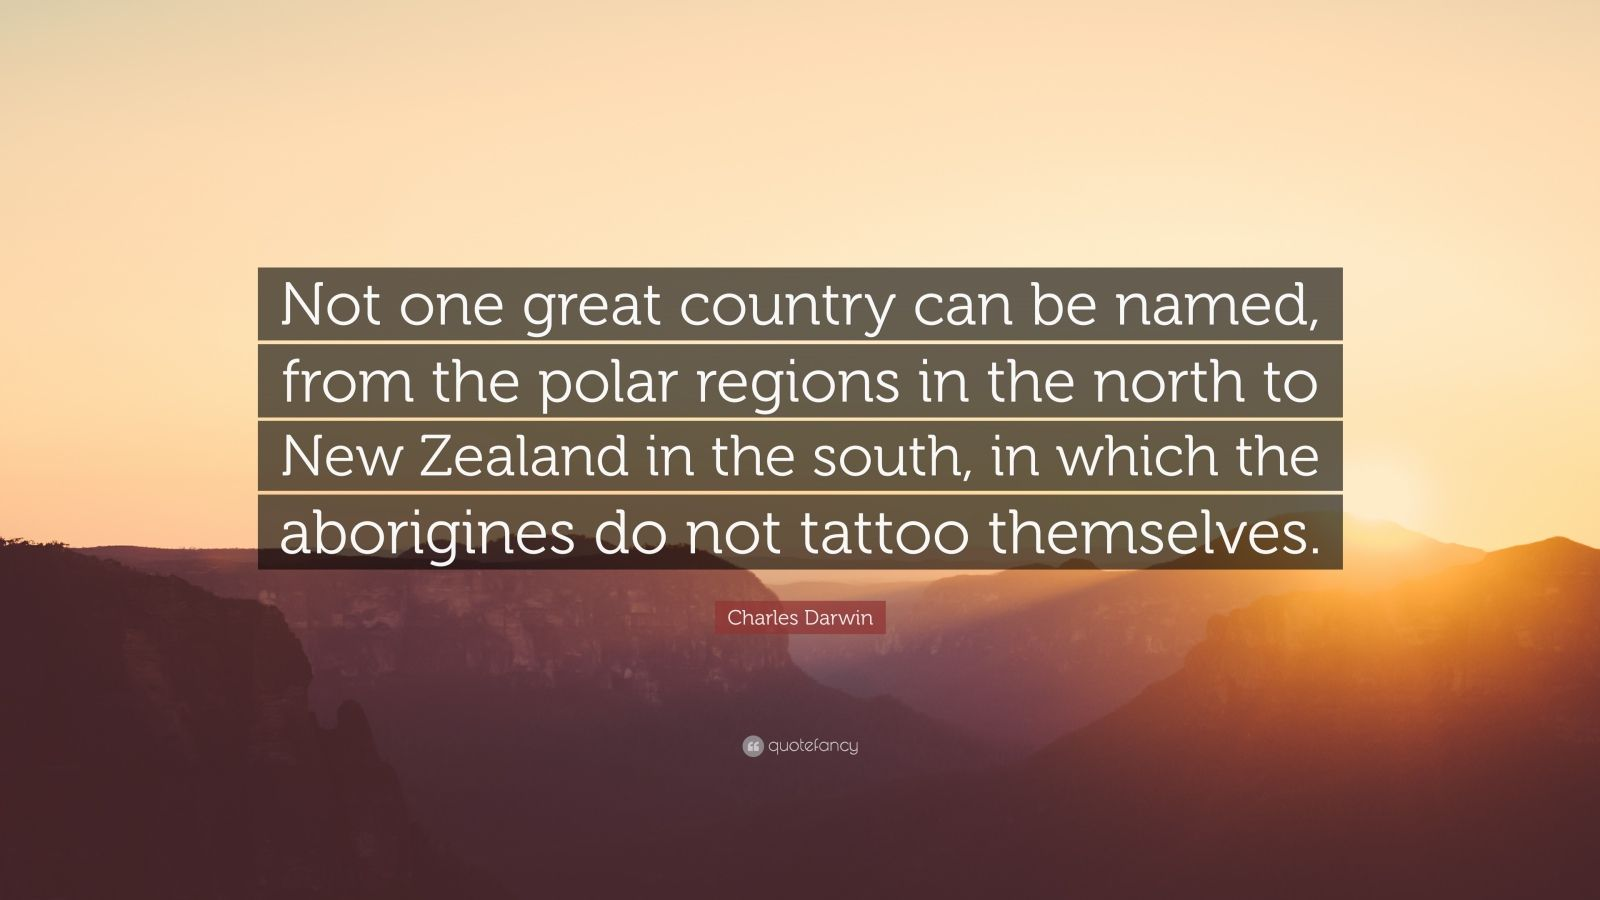 """Charles Darwin Quote: """"Not one great country can be named, from the polar regions in the north to New Zealand in the south, in which the aborigines do not tattoo themselves."""""""